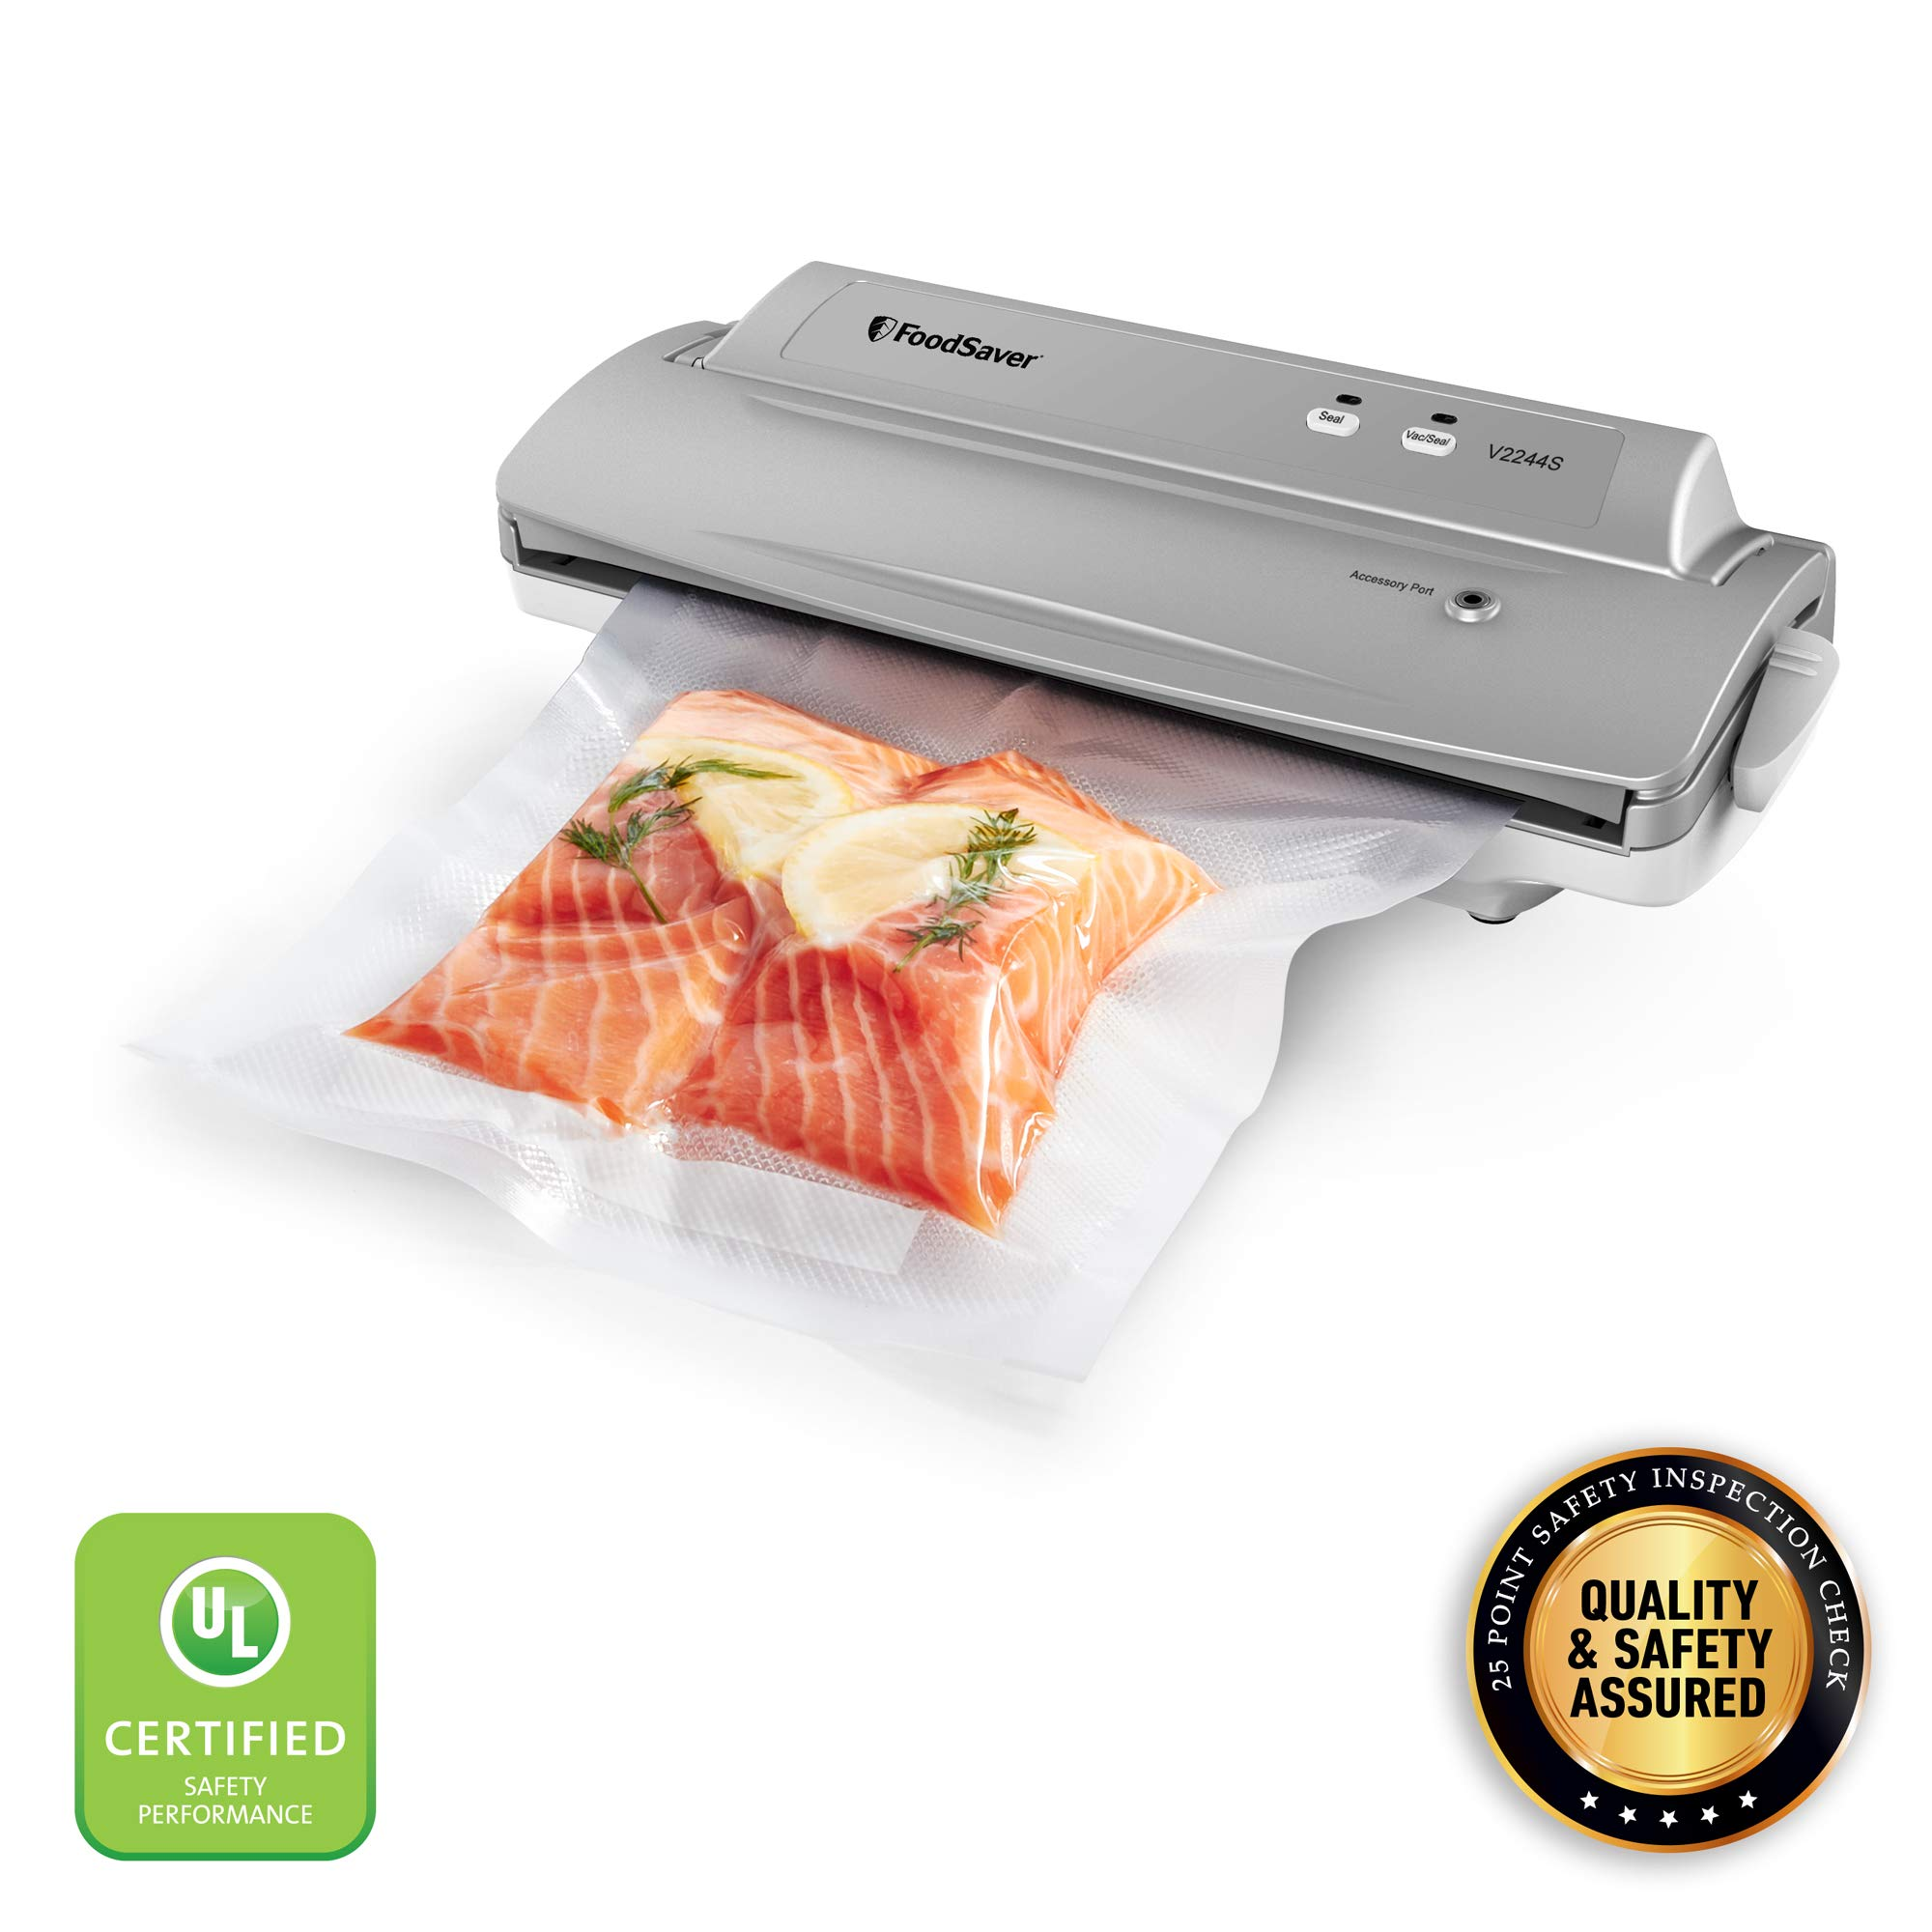 FoodSaver V2244 Vacuum Sealer Machine for Food Preservation with Bags and Rolls Starter Kit | #1 Vacuum Sealer System | Compact & Easy Clean | UL Safety Certified | Silver by FoodSaver